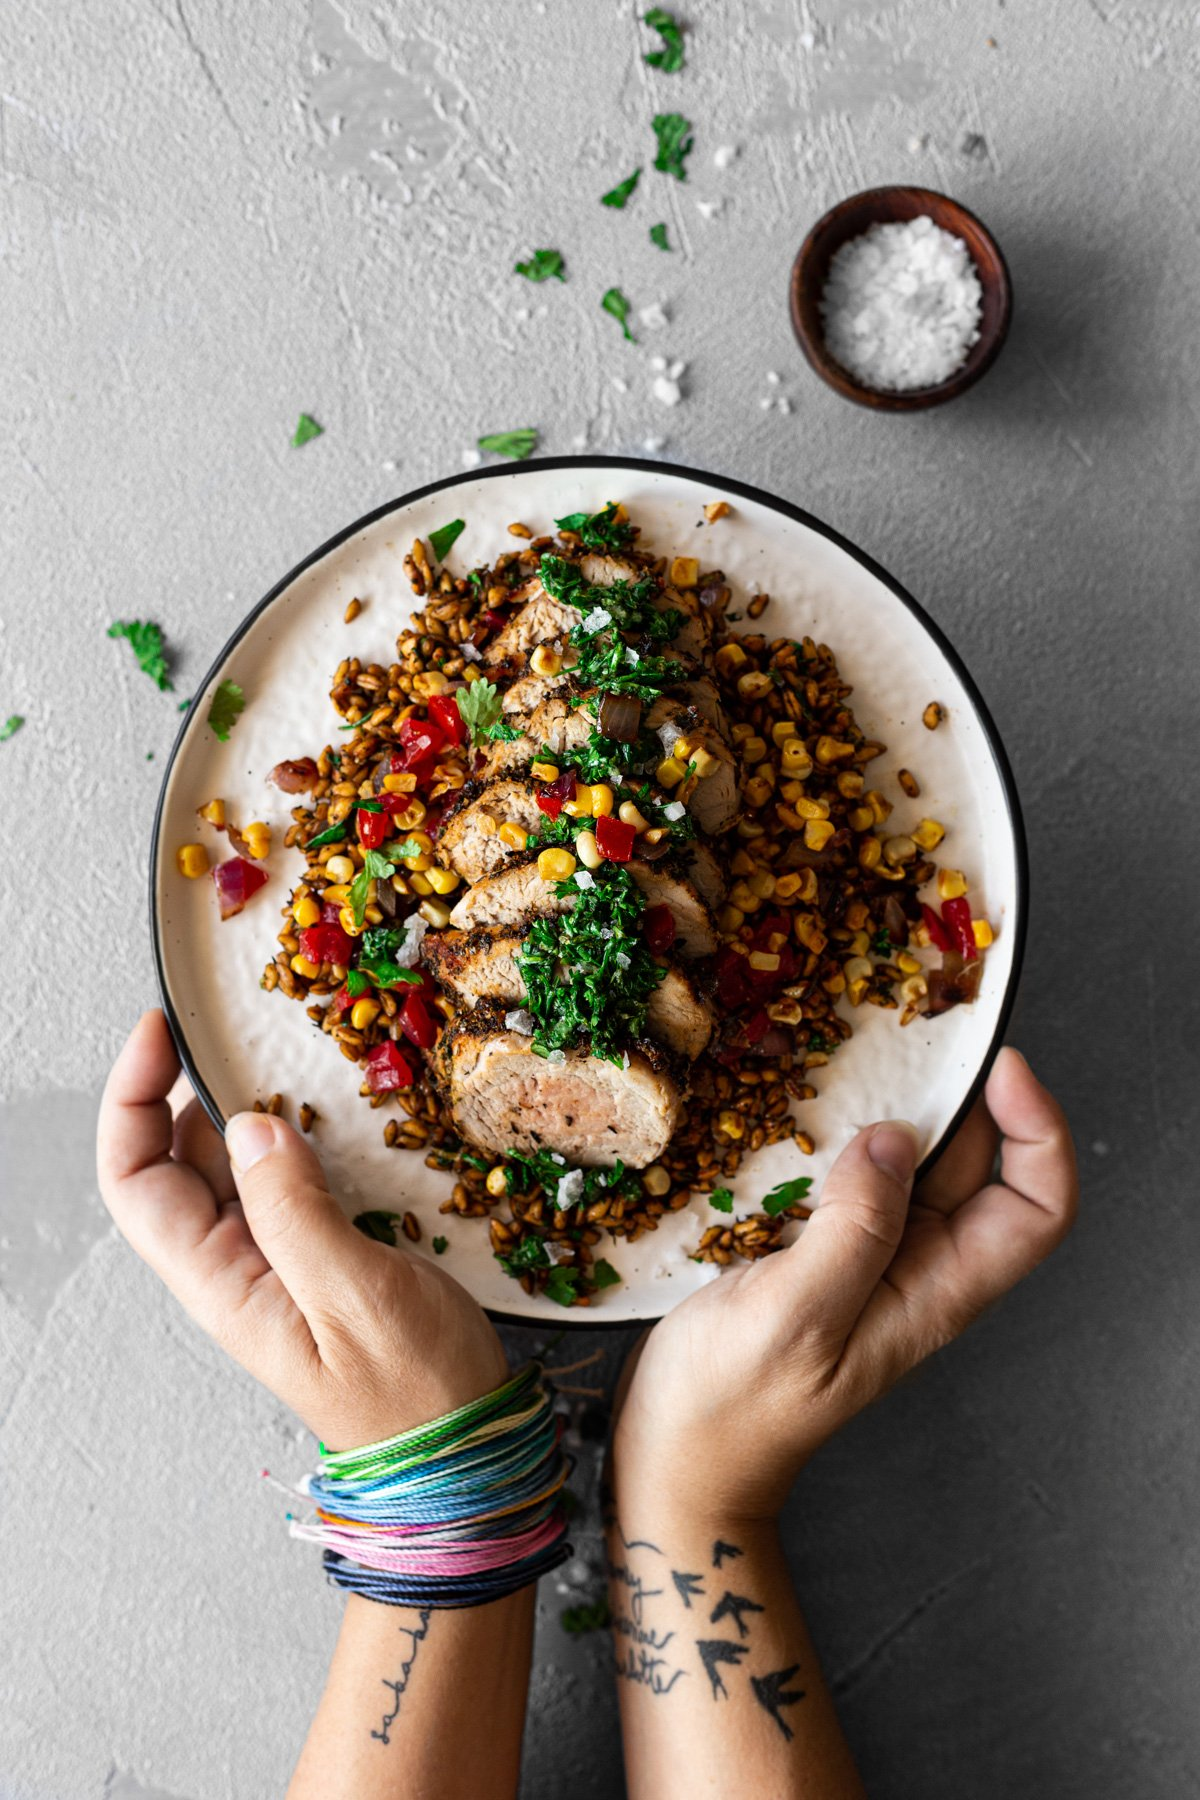 hands holding a plate with chimichurri air fryer pork tenderloin with farro salad